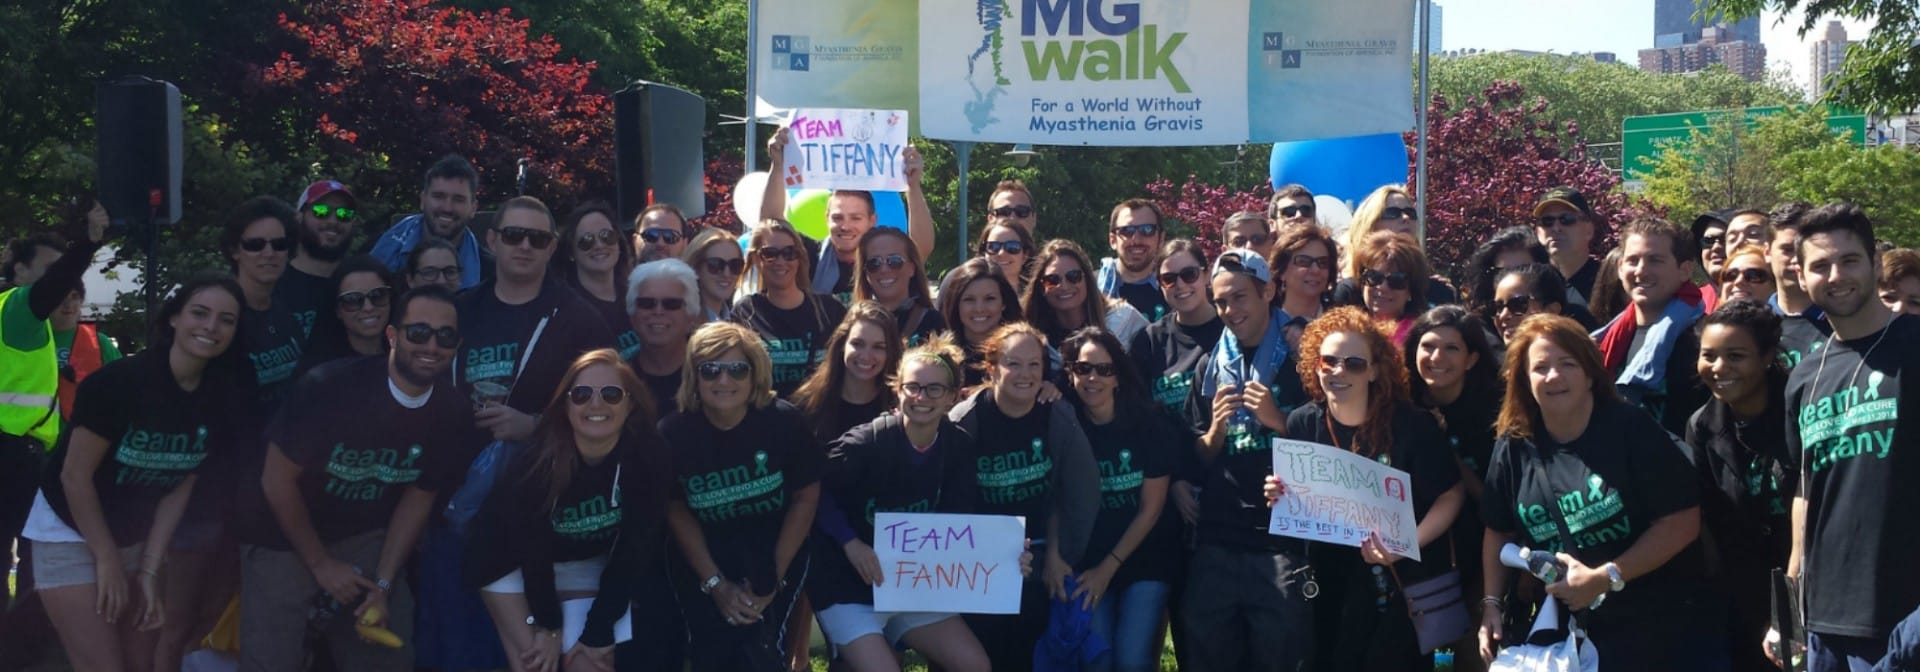 TriState Mg Walk 2015